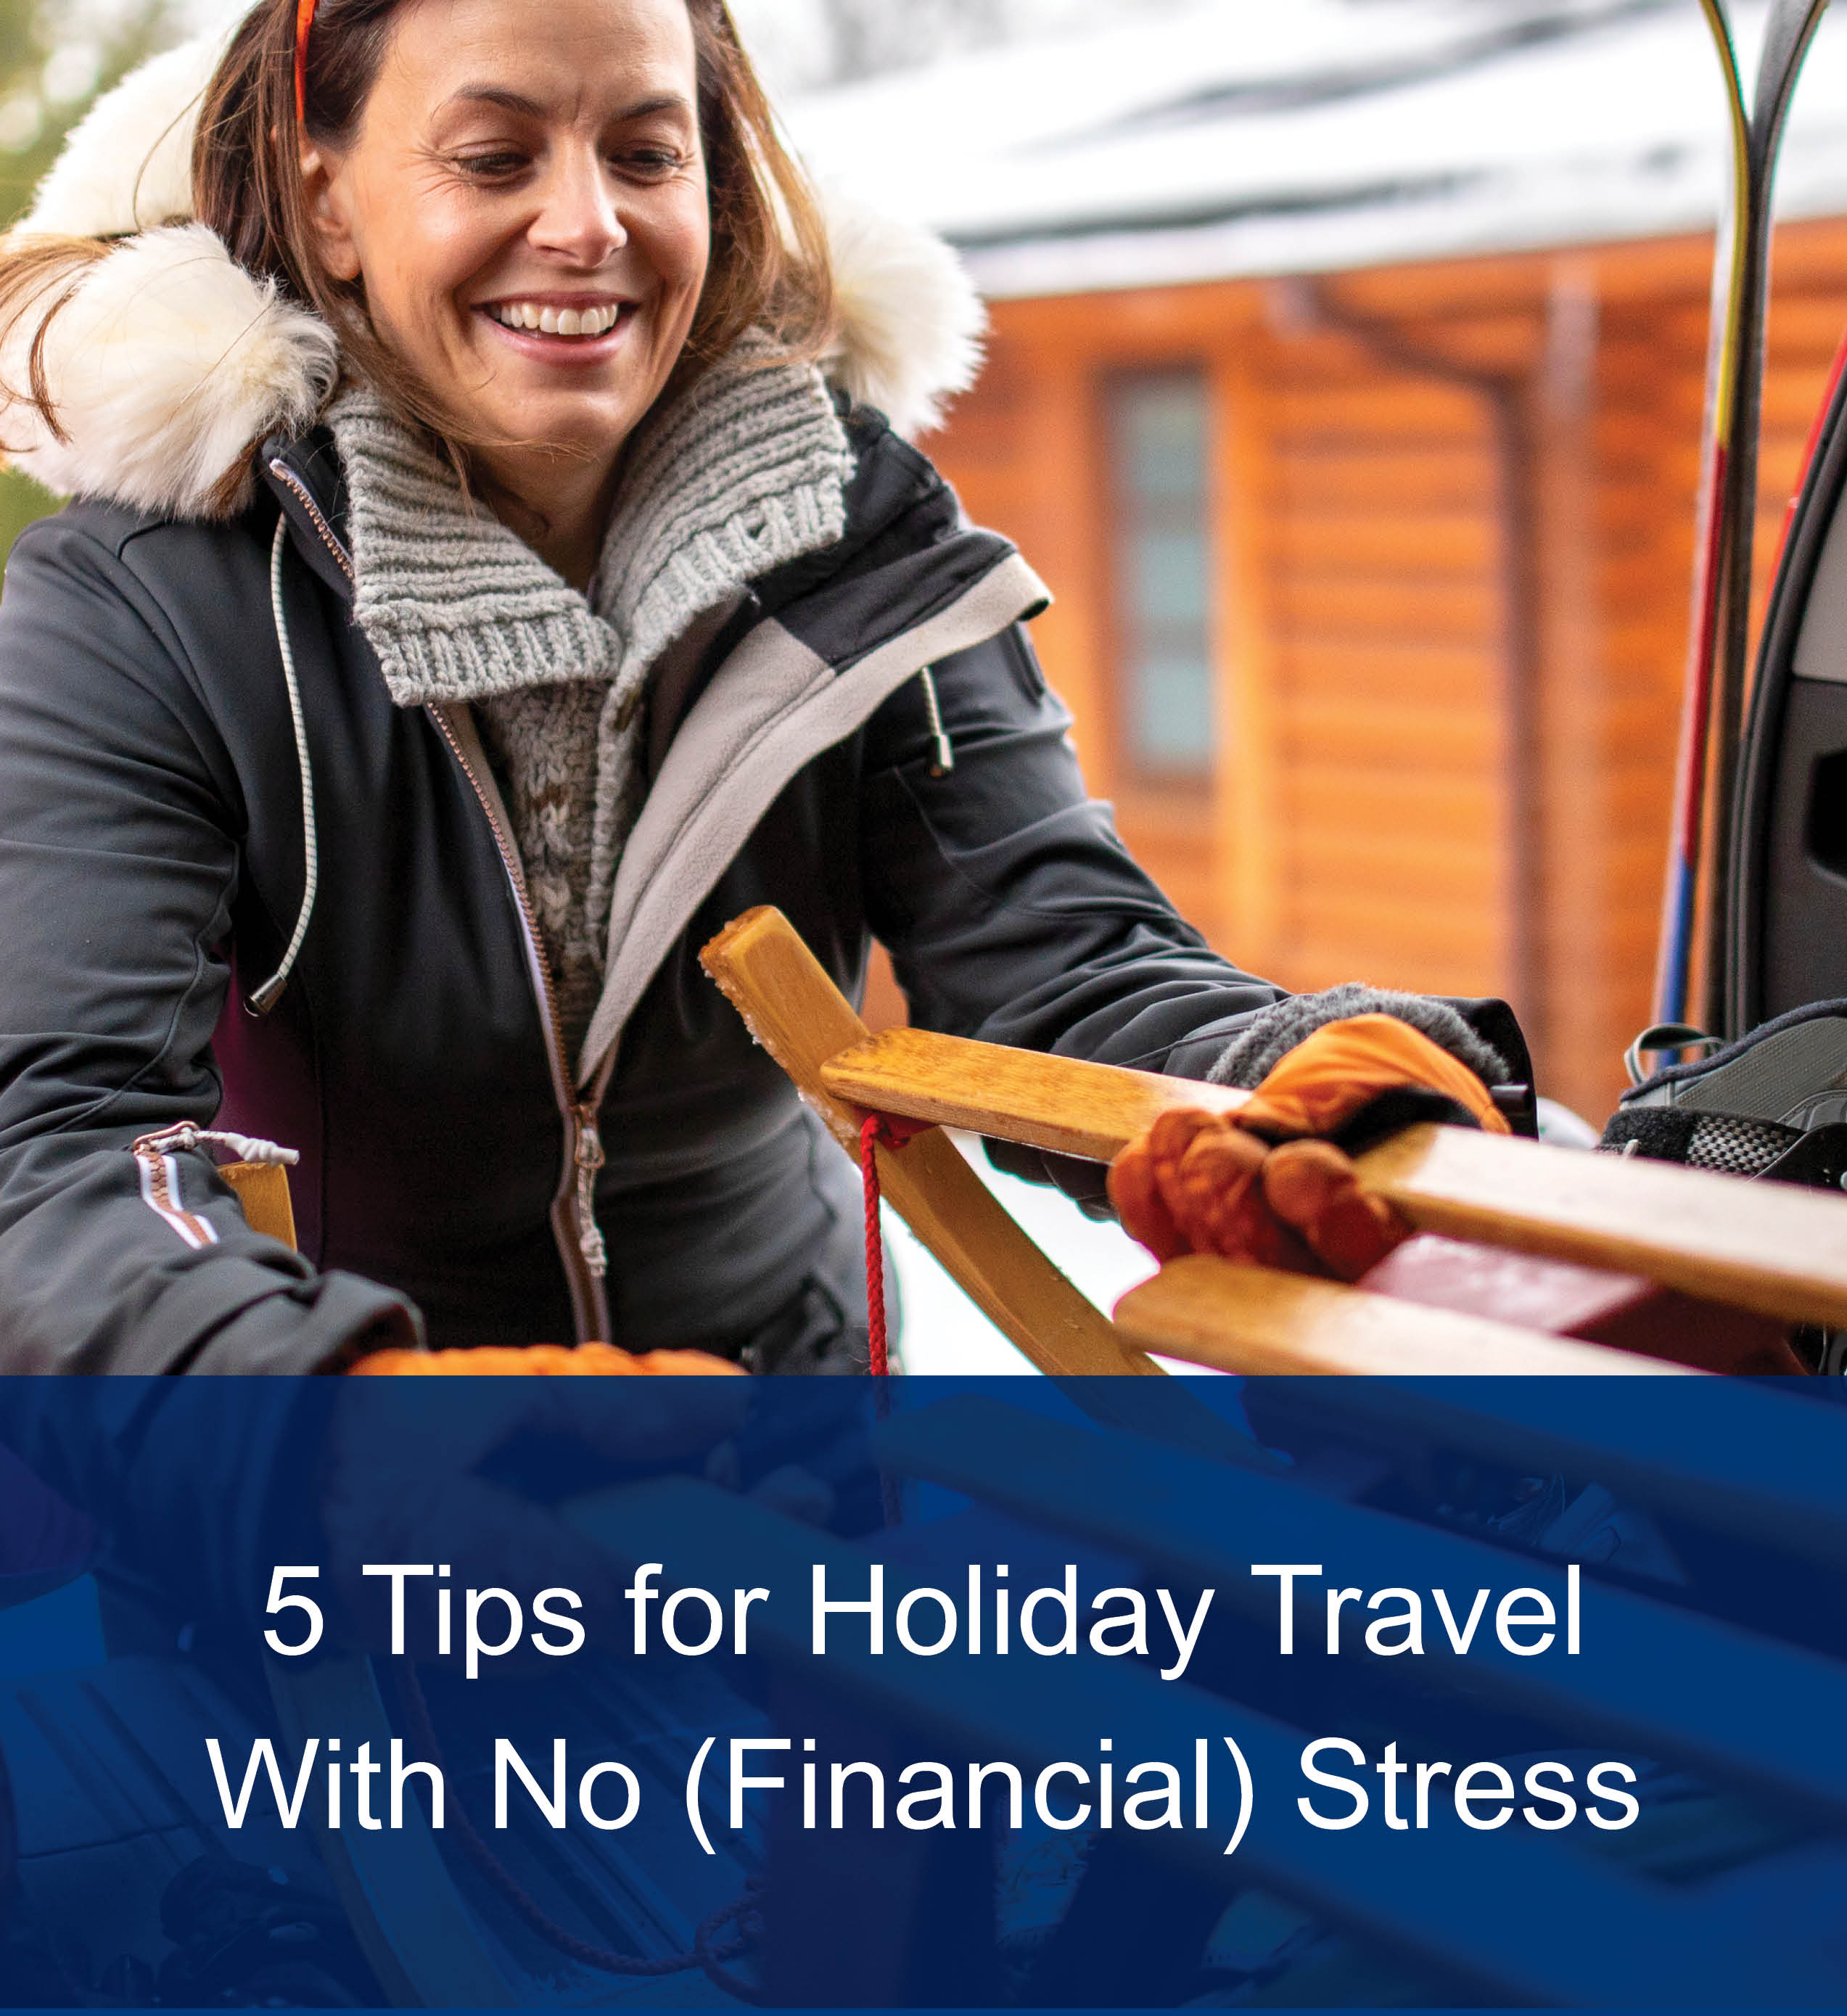 Five Tips for Holiday Travel With No (Financial) Stress thumbnail